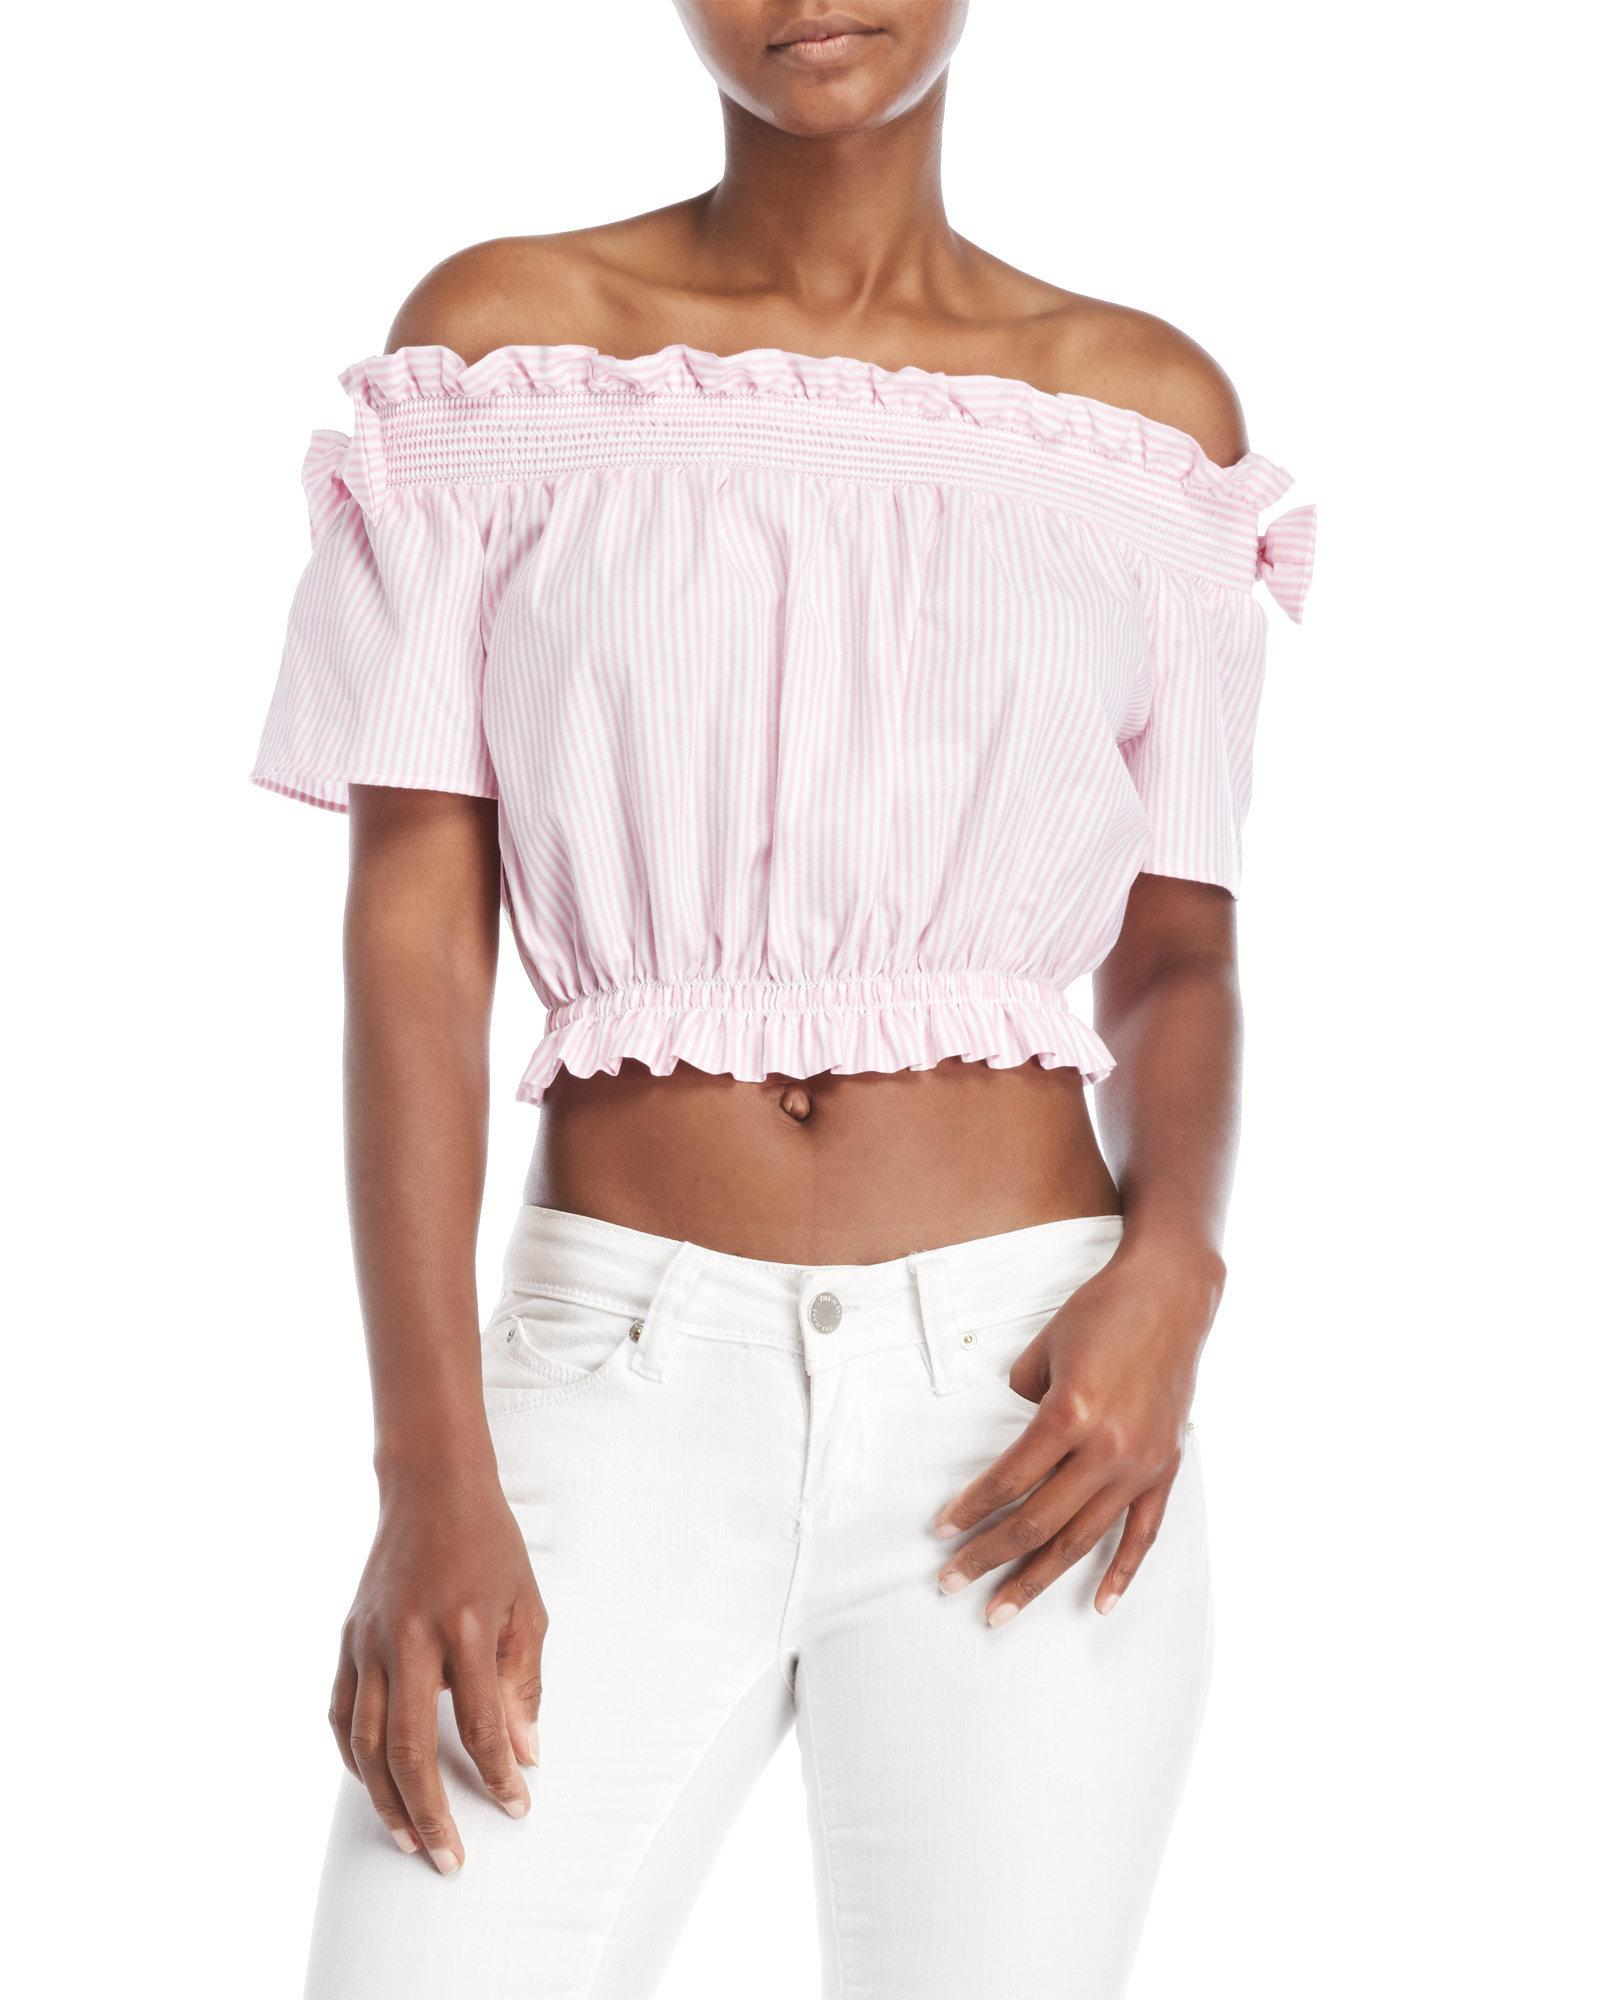 940cdf51d64ded Lyst - Love Tree Striped Off-the-shoulder Crop Top in Pink